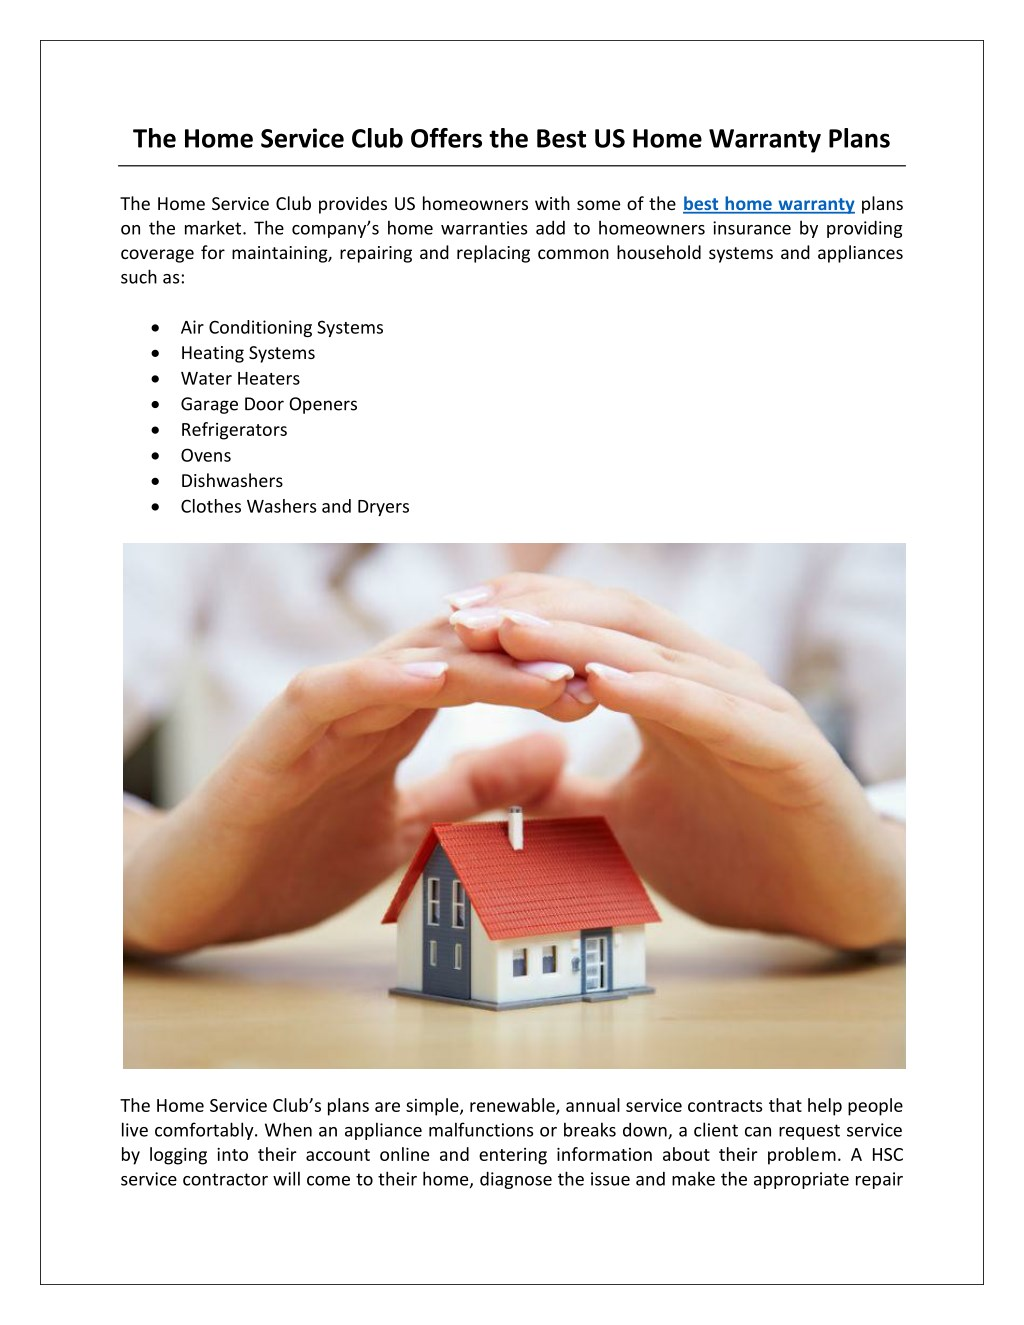 Ppt The Home Service Club Offers The Best Us Home Warranty Plans Powerpoint Presentation Id 7790228